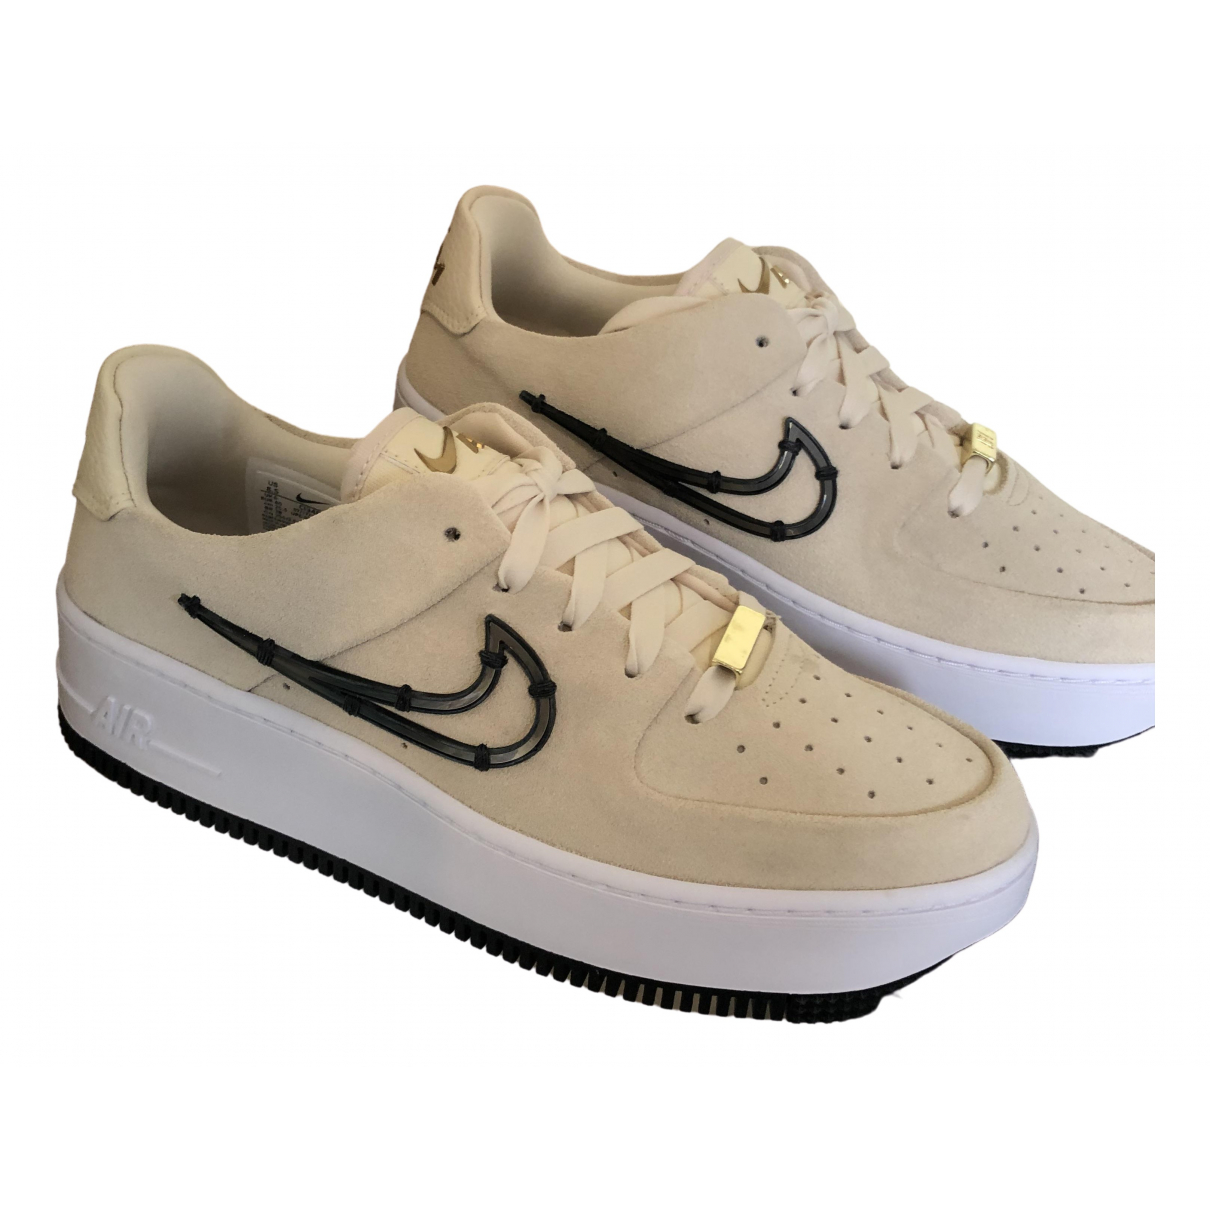 Nike Air Force 1 Beige Suede Trainers for Women 6 UK